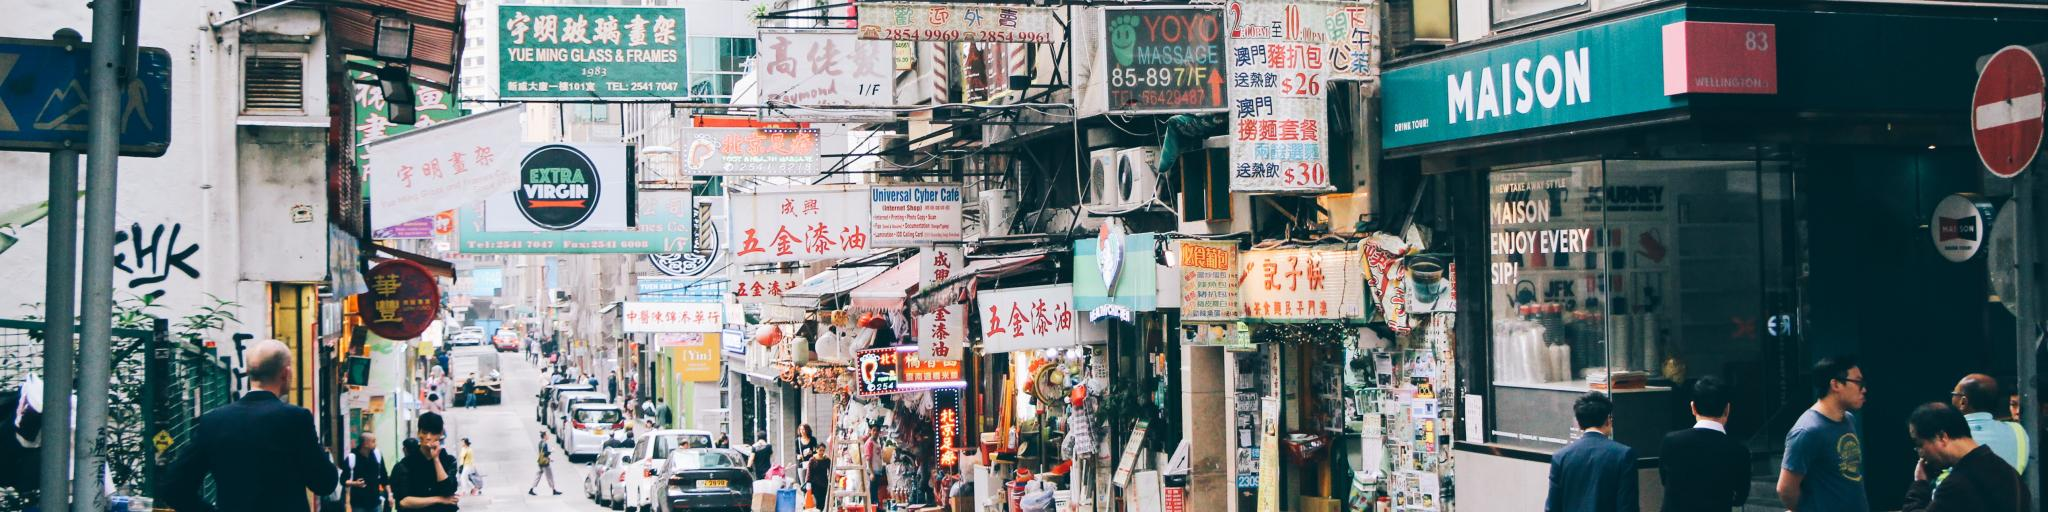 A street filled with signs and people in Hong Kong